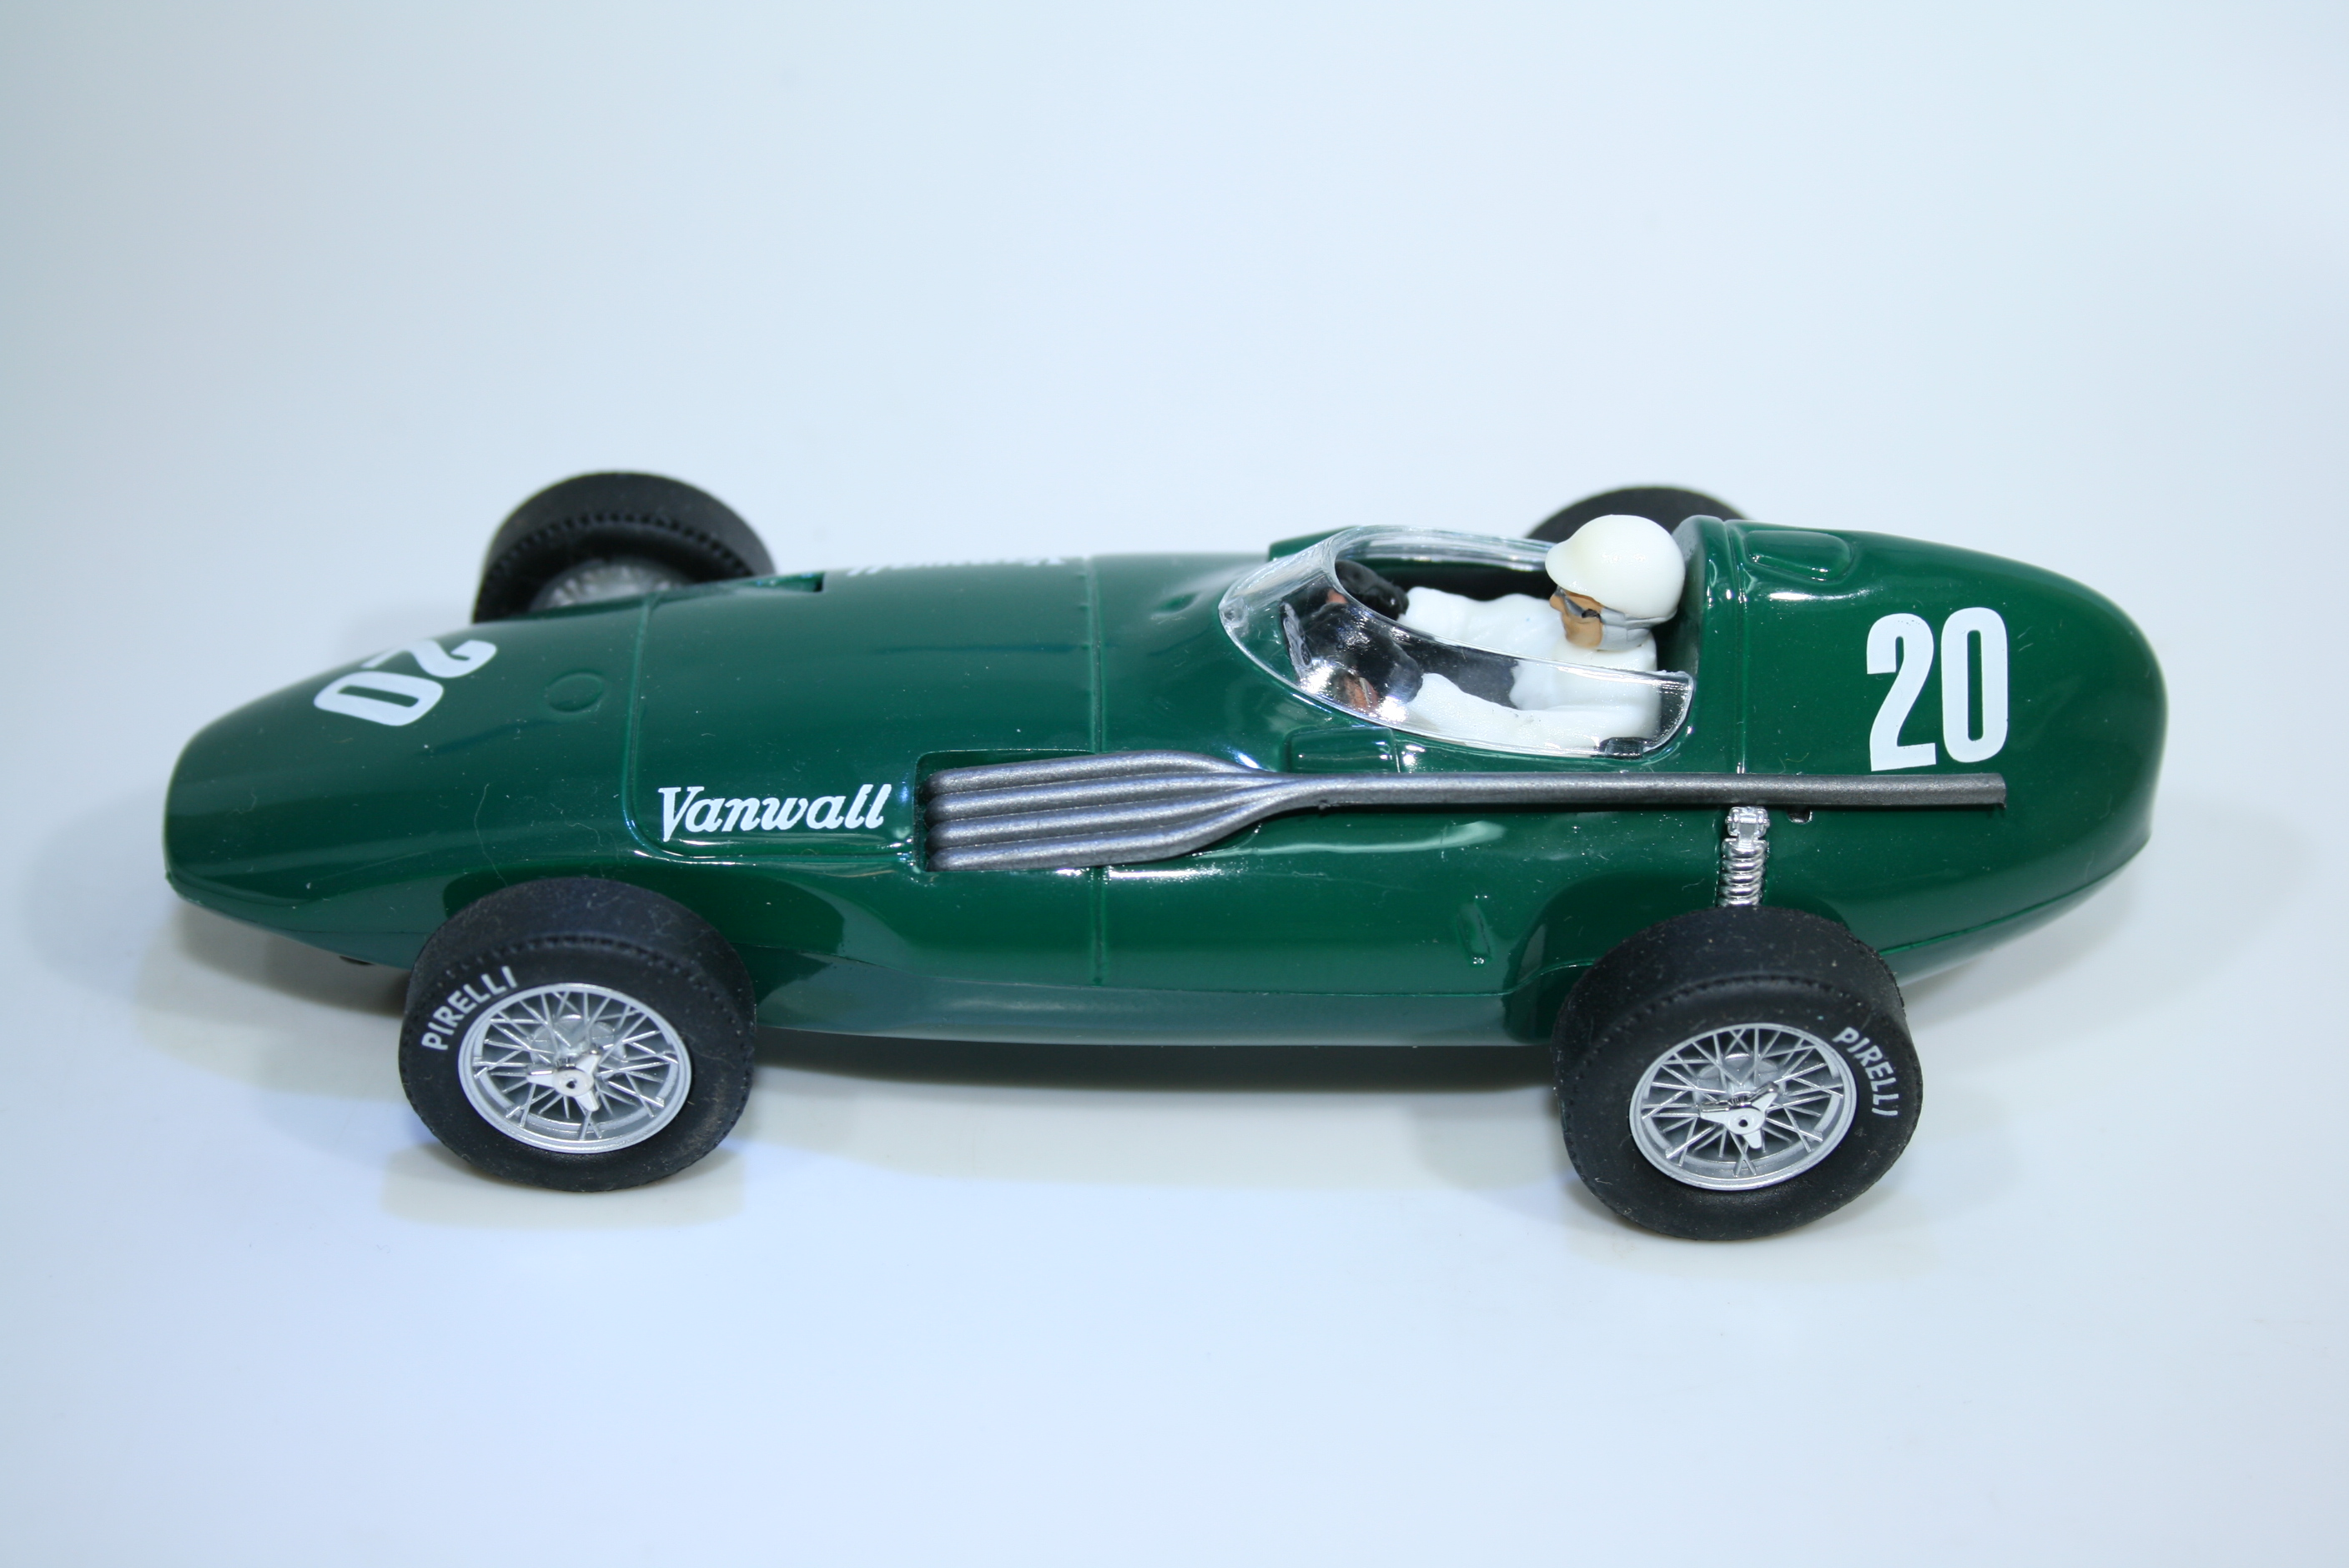 1506 Vanwall VW3 1957 S Moss Cartrix 0015 Boxed